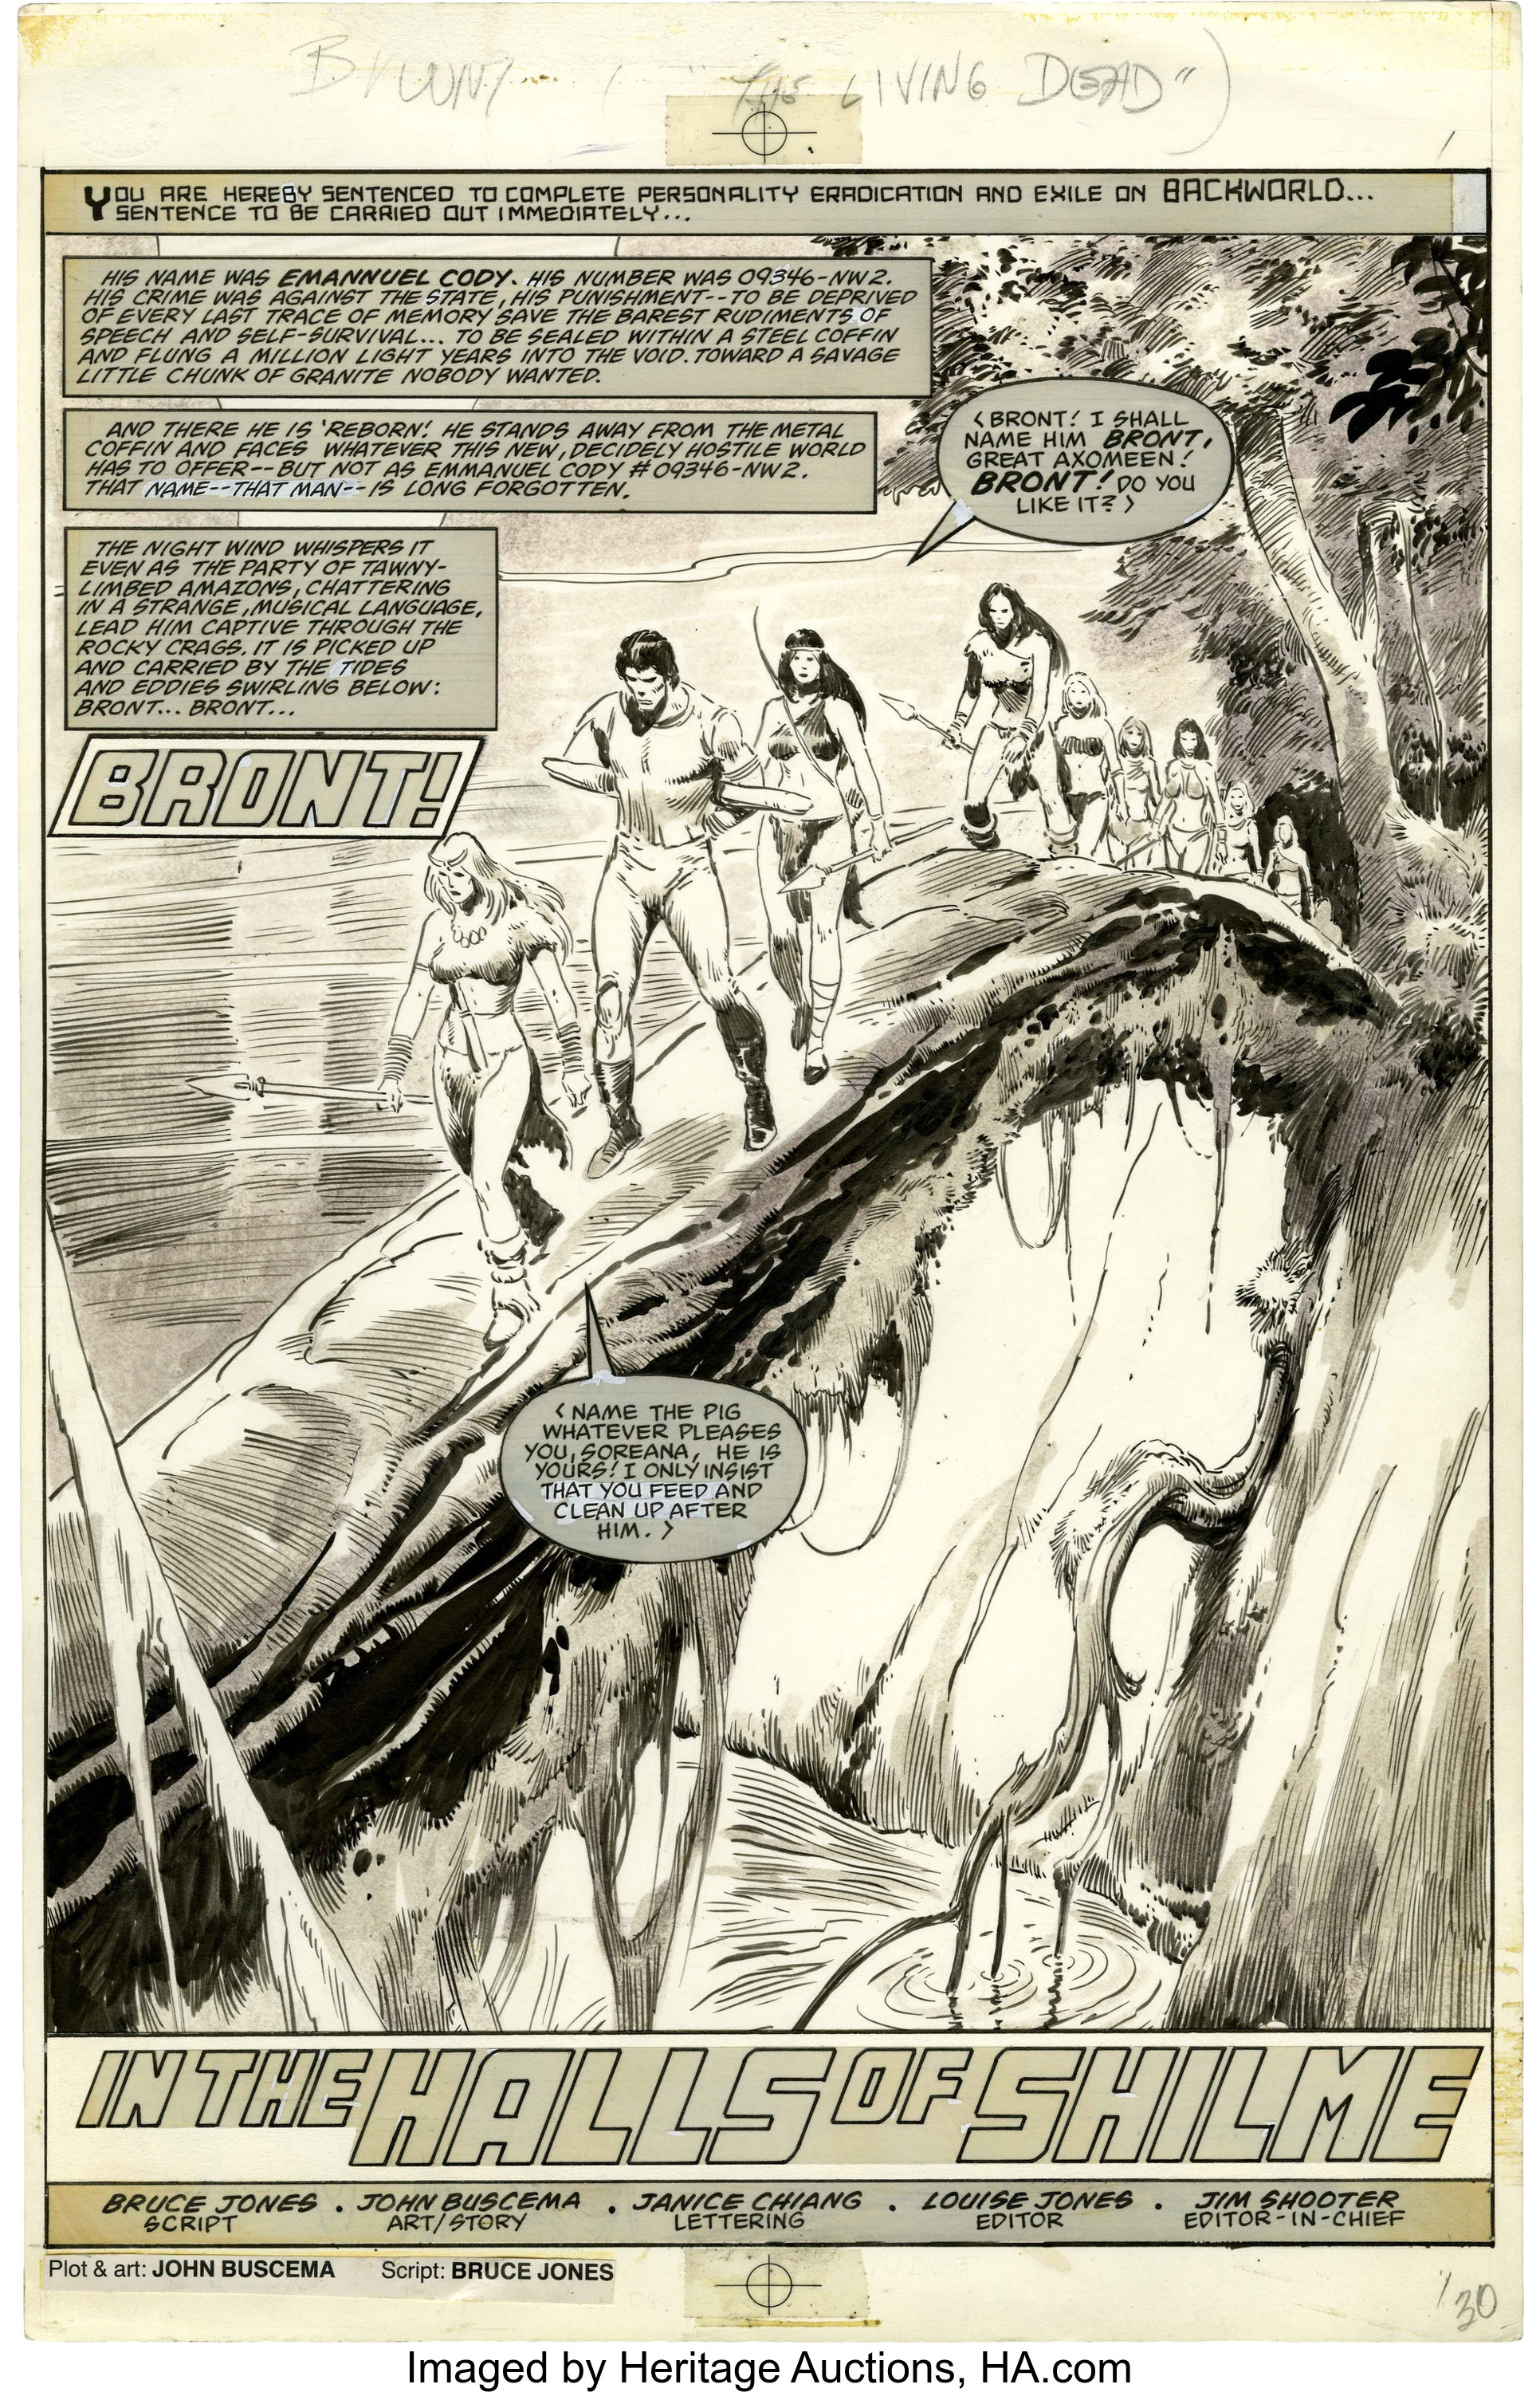 John Buscema Savage Sword of Conan #79 Splash page 1